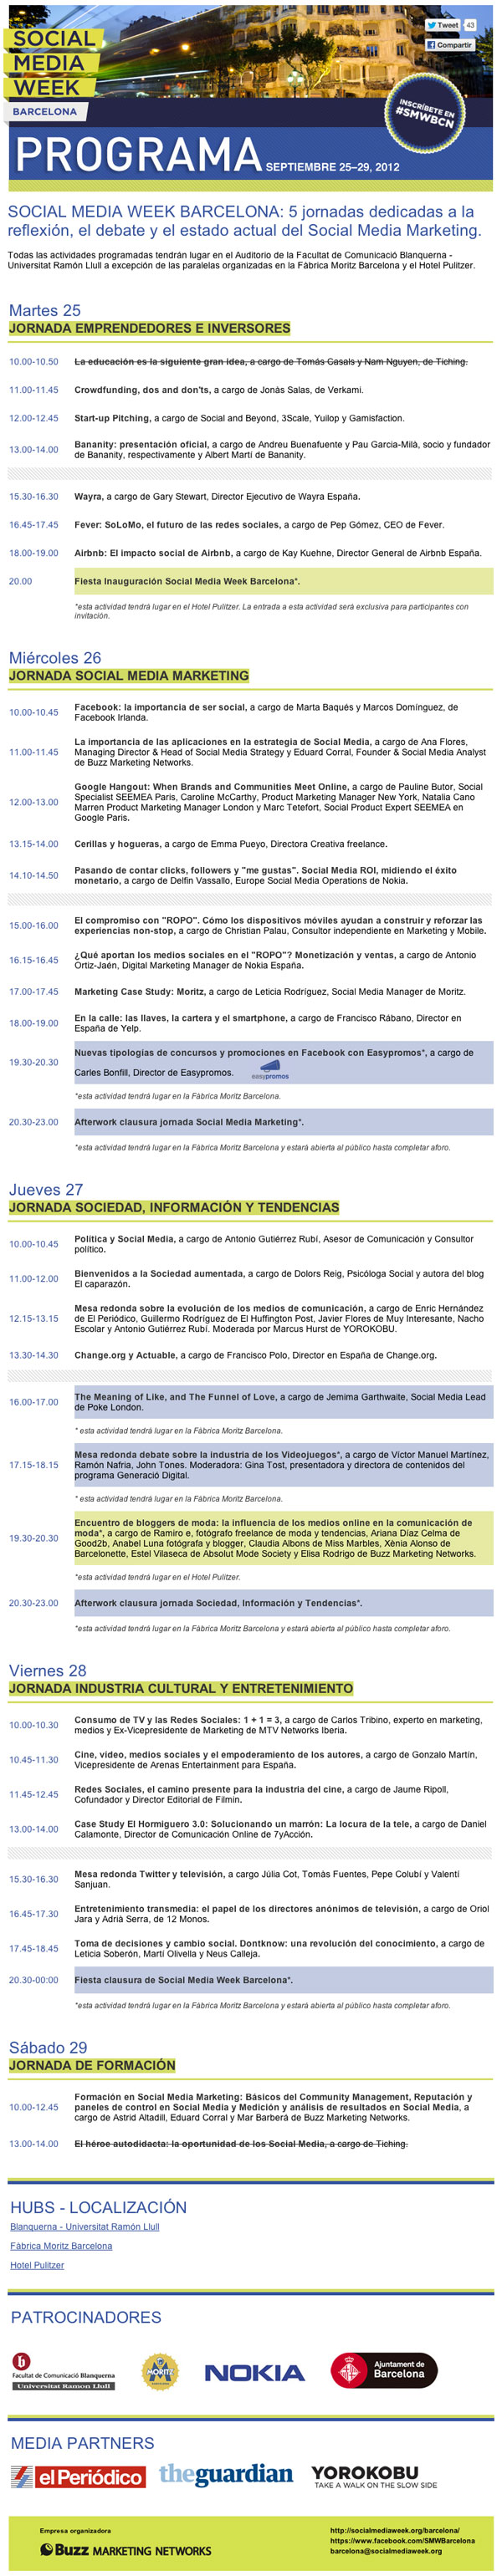 Programa Social Media Week Barcelona